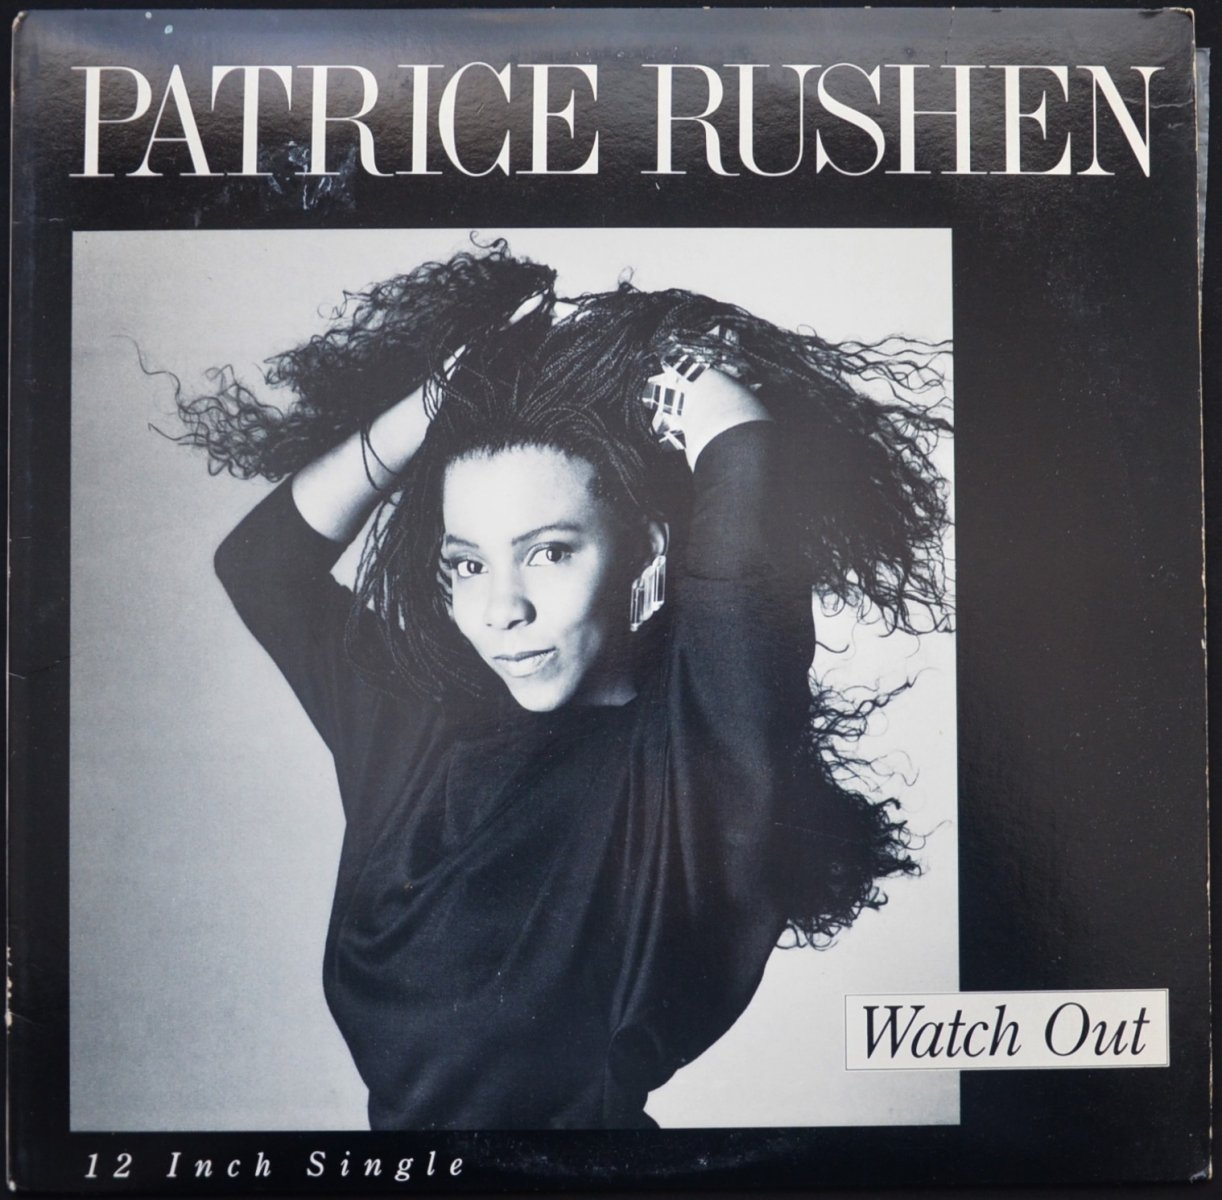 PATRICE RUSHEN / WATCH OUT / OVER THE PHONE (12